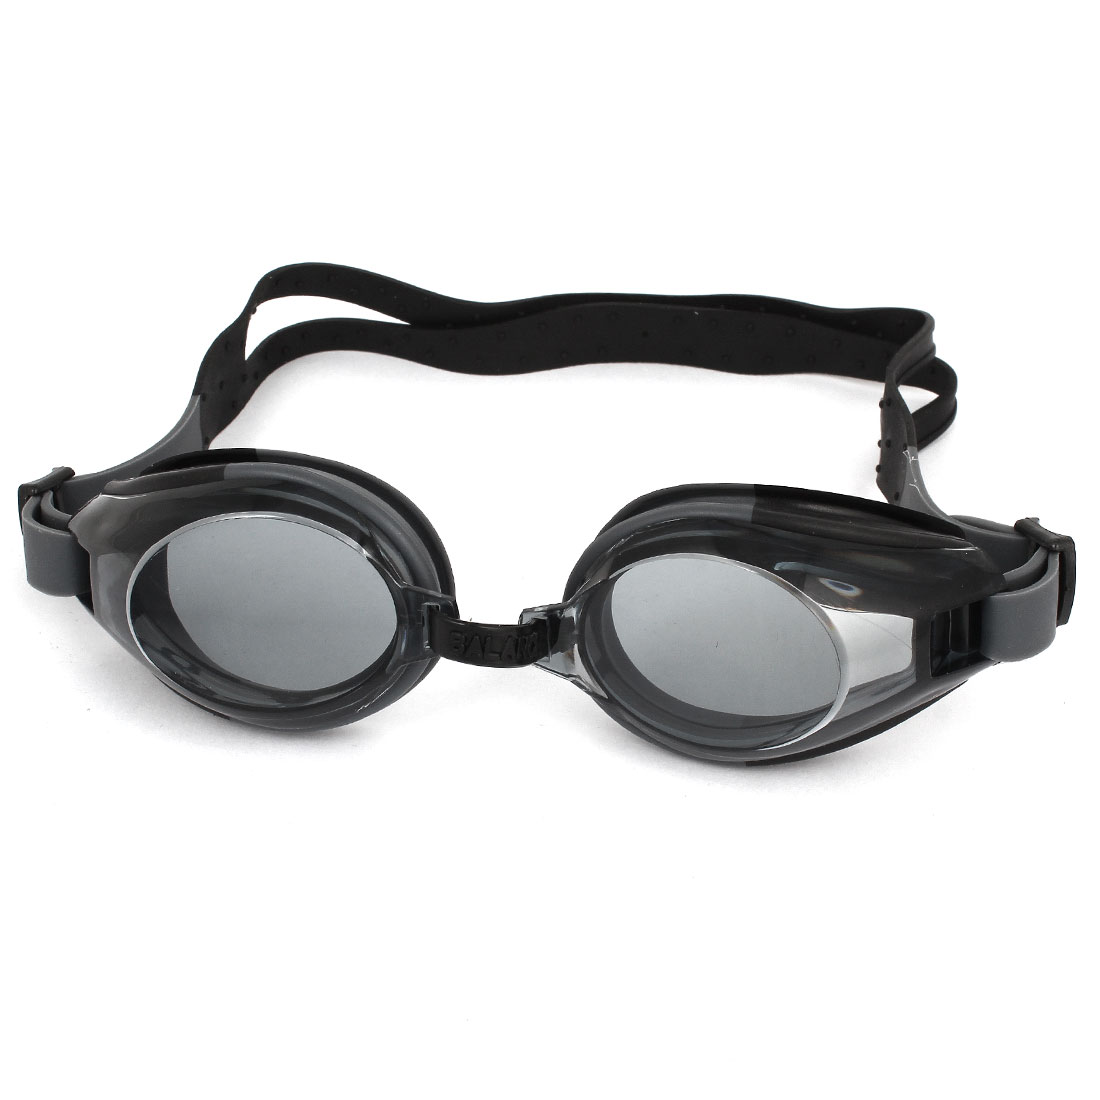 Black Clear Silicone Adjustable Band Swimming Goggles w Earplugs